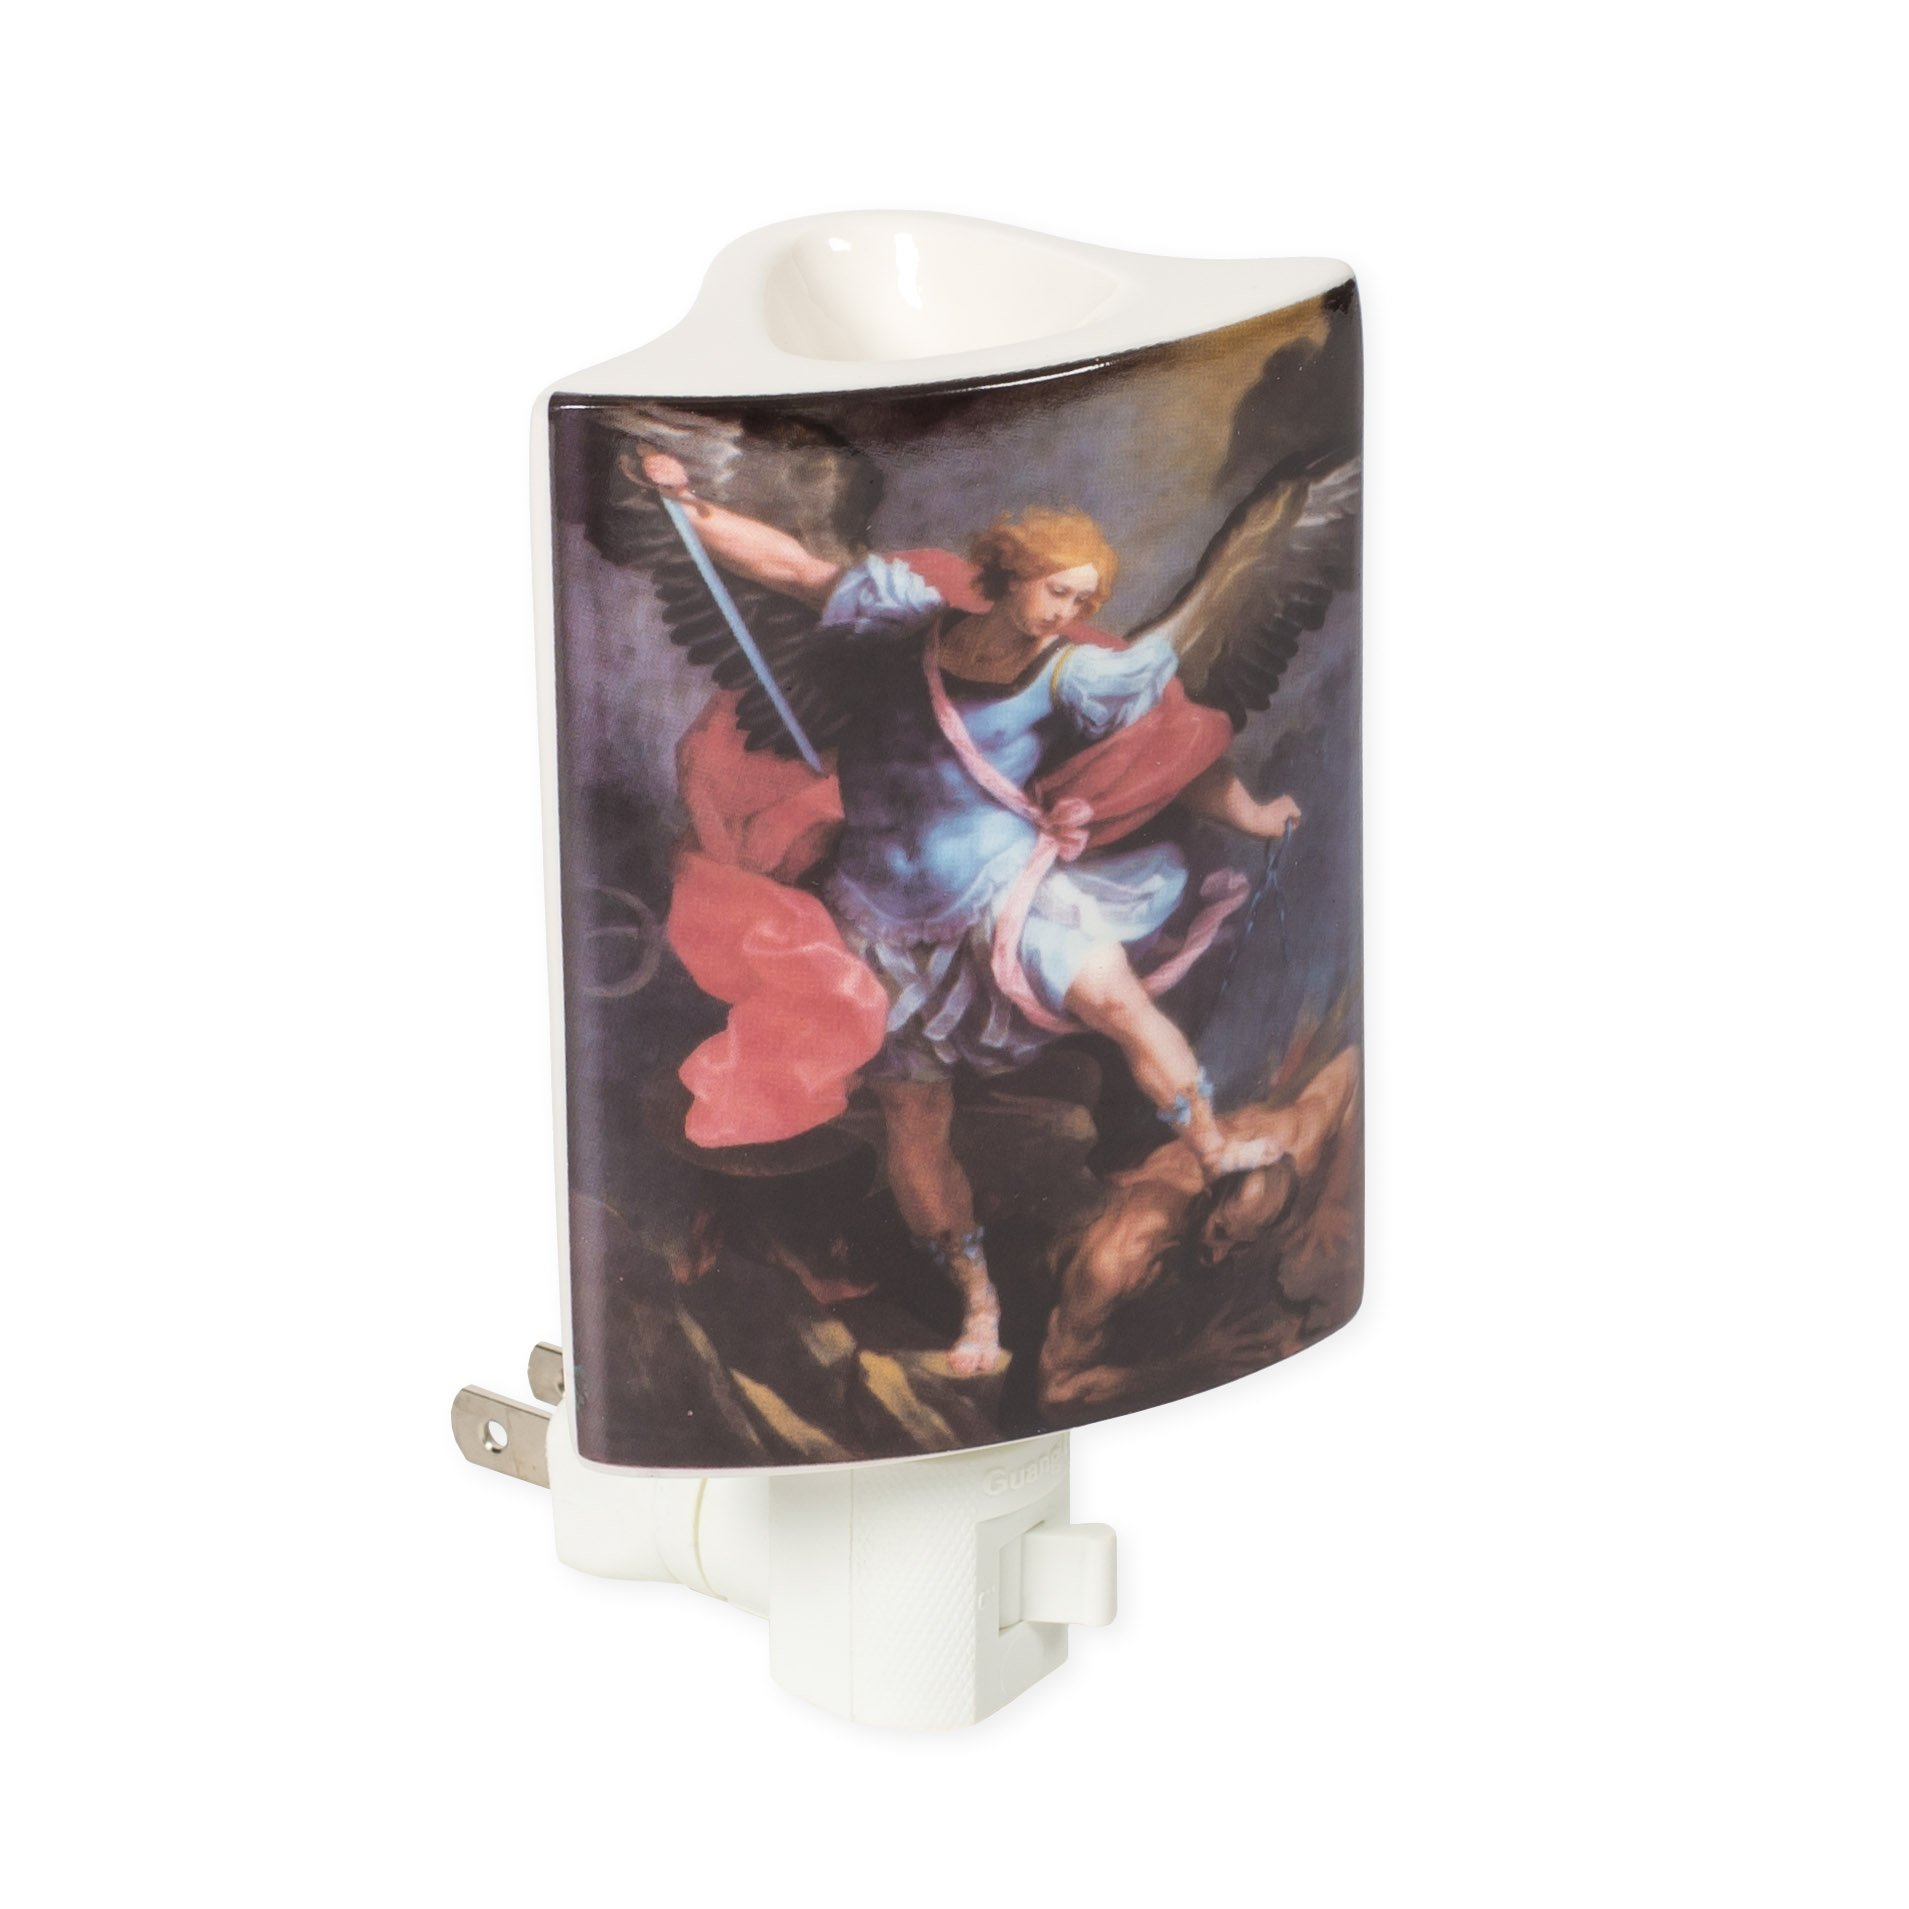 St. Michael Archangel 3 x 5.5 Porcelain Electric Wall Plug-In Oil Burner Night Light